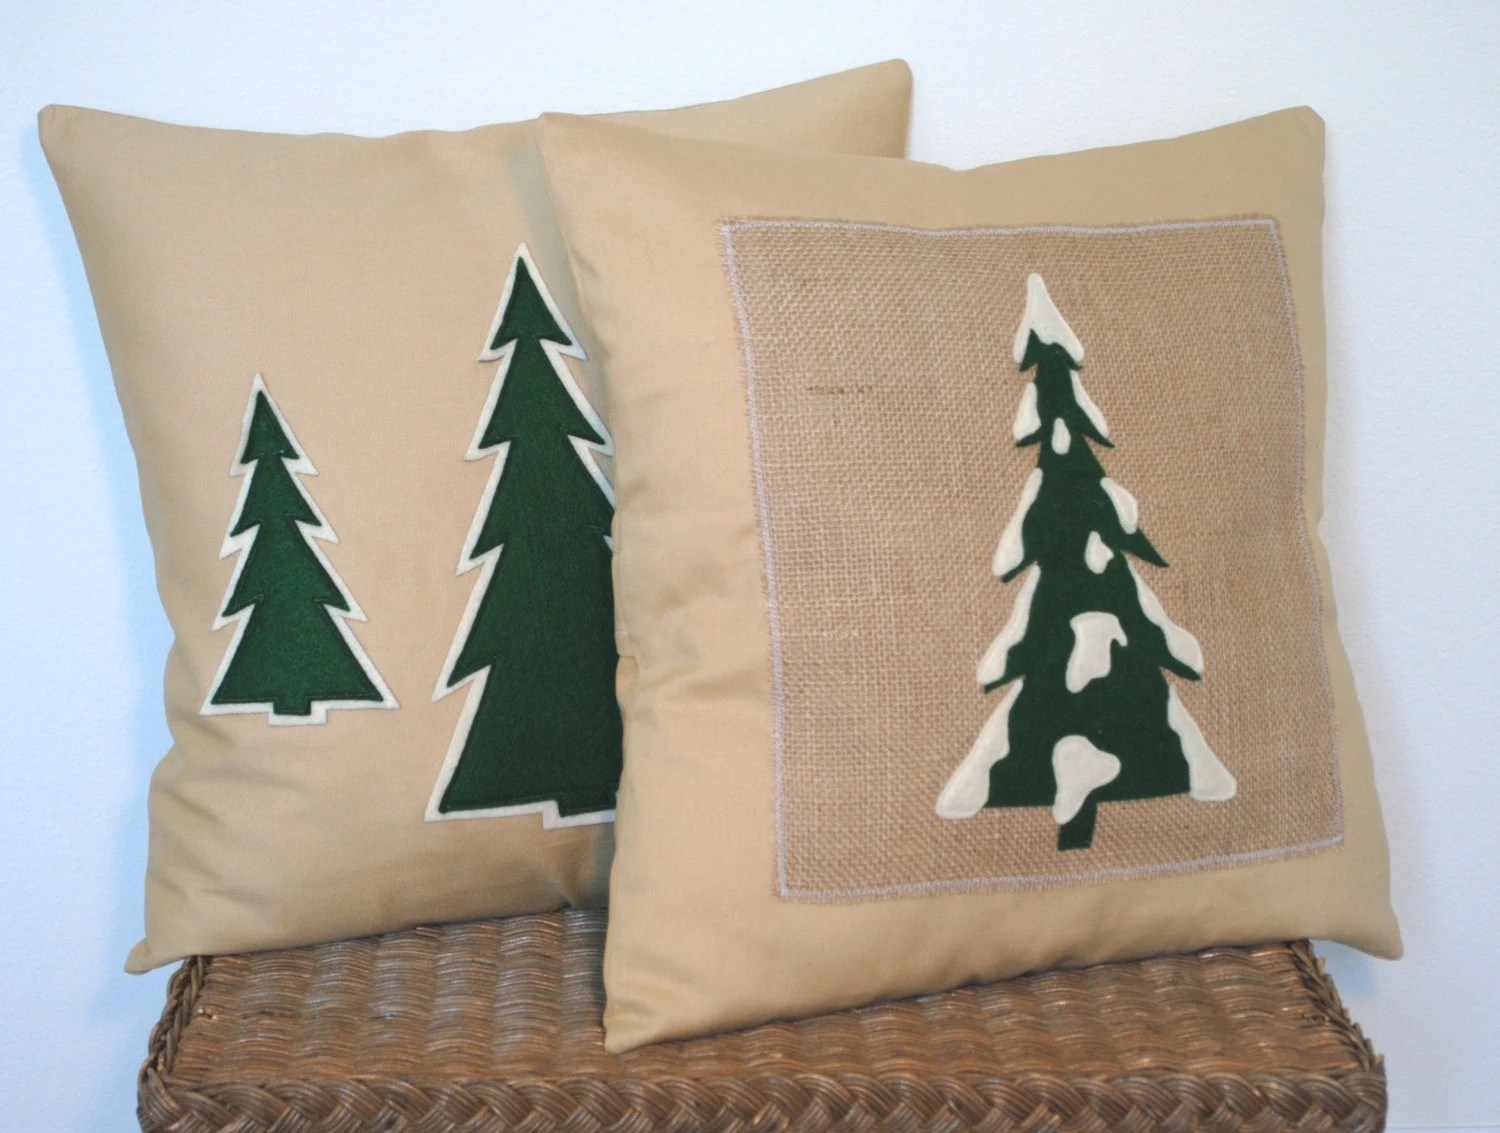 Cushion Covers Christmas Two Christmas Tree Pillow Covers Holiday By Thatdutchgirlhome